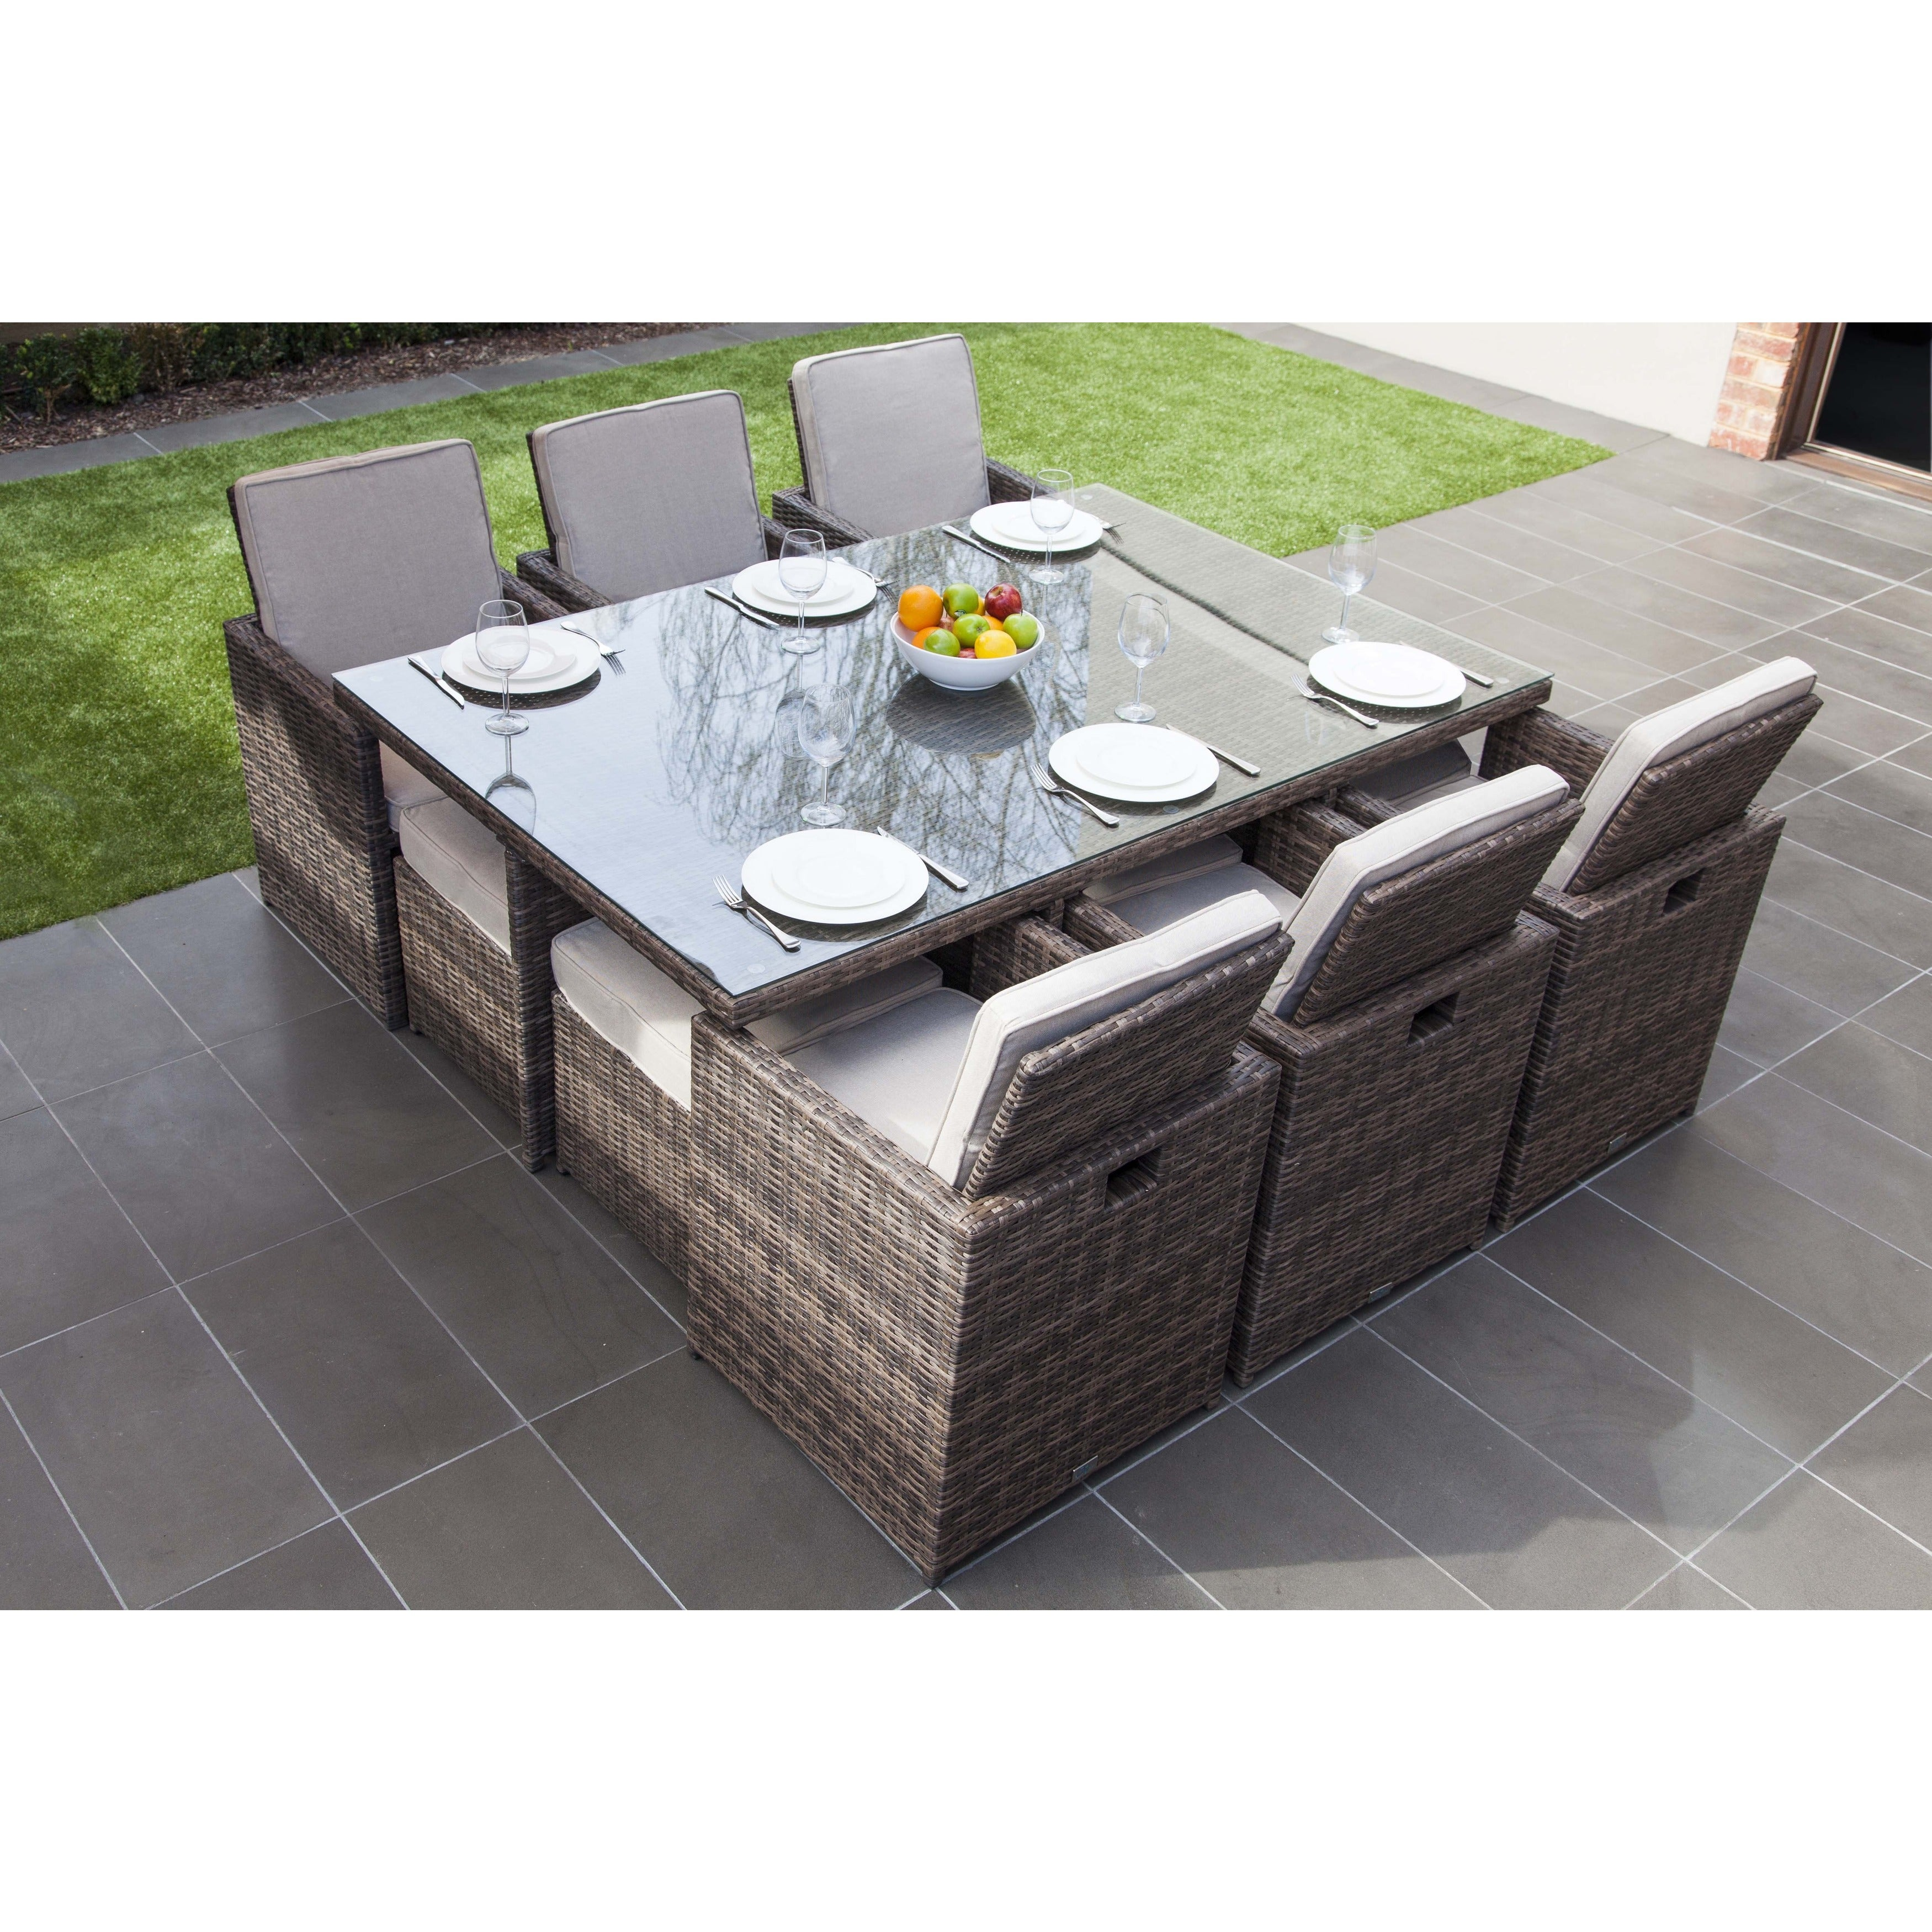 Malta 11 Piece Outdoor Wicker Dining Table And Cushion Set By Direct Wicker    Free Shipping Today   Overstock   22361489